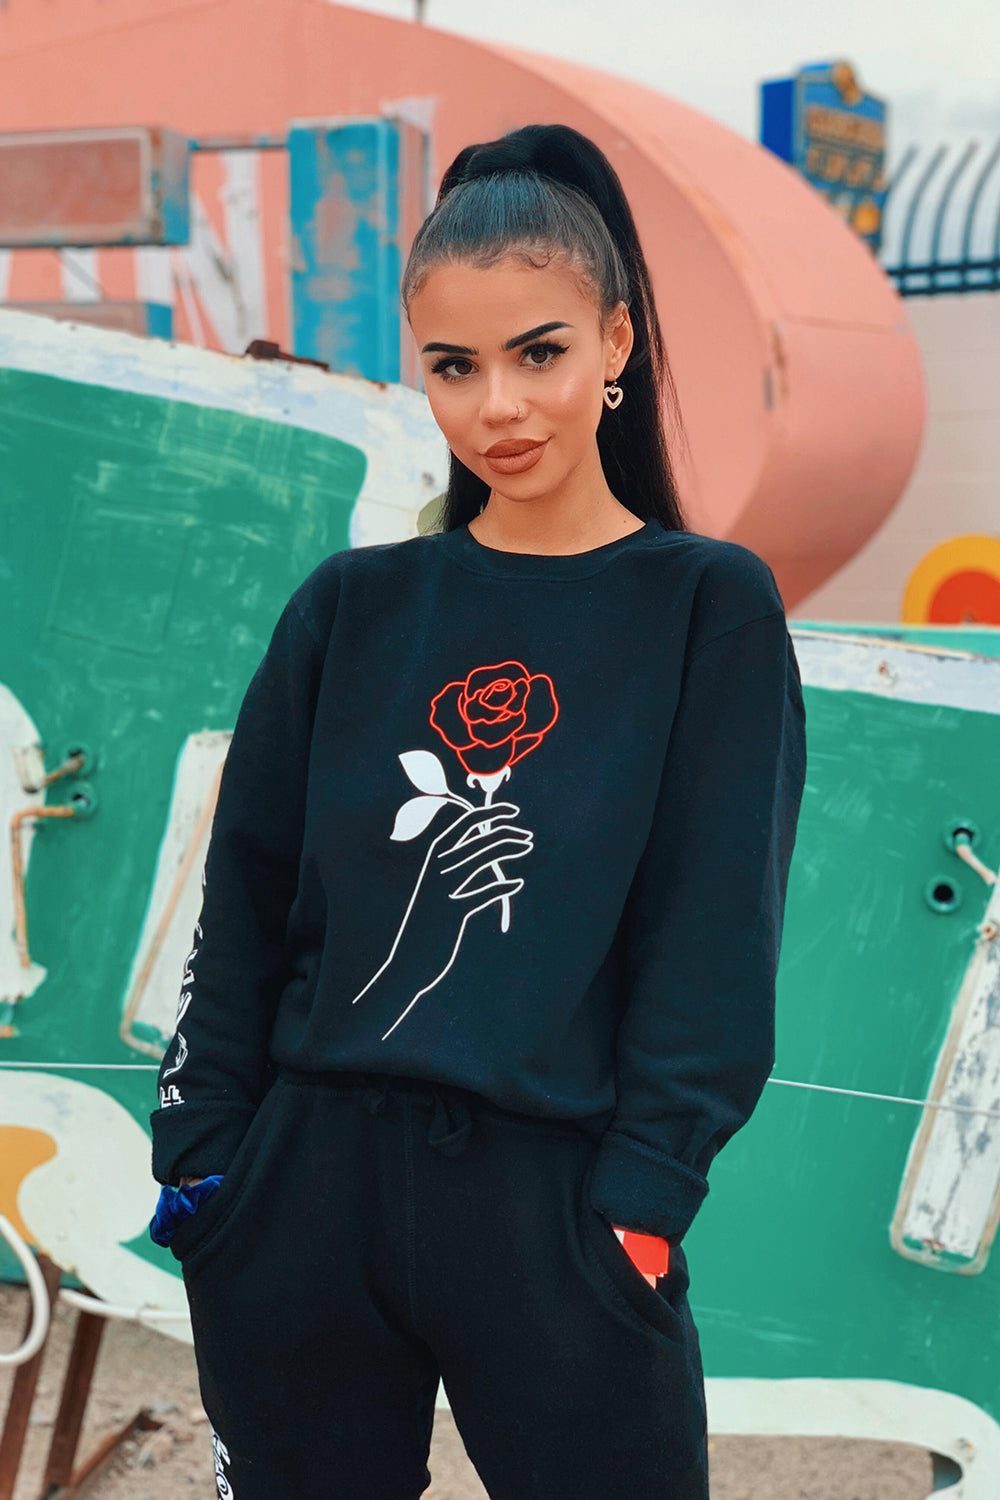 Snitchery: Black Rose Crewneck